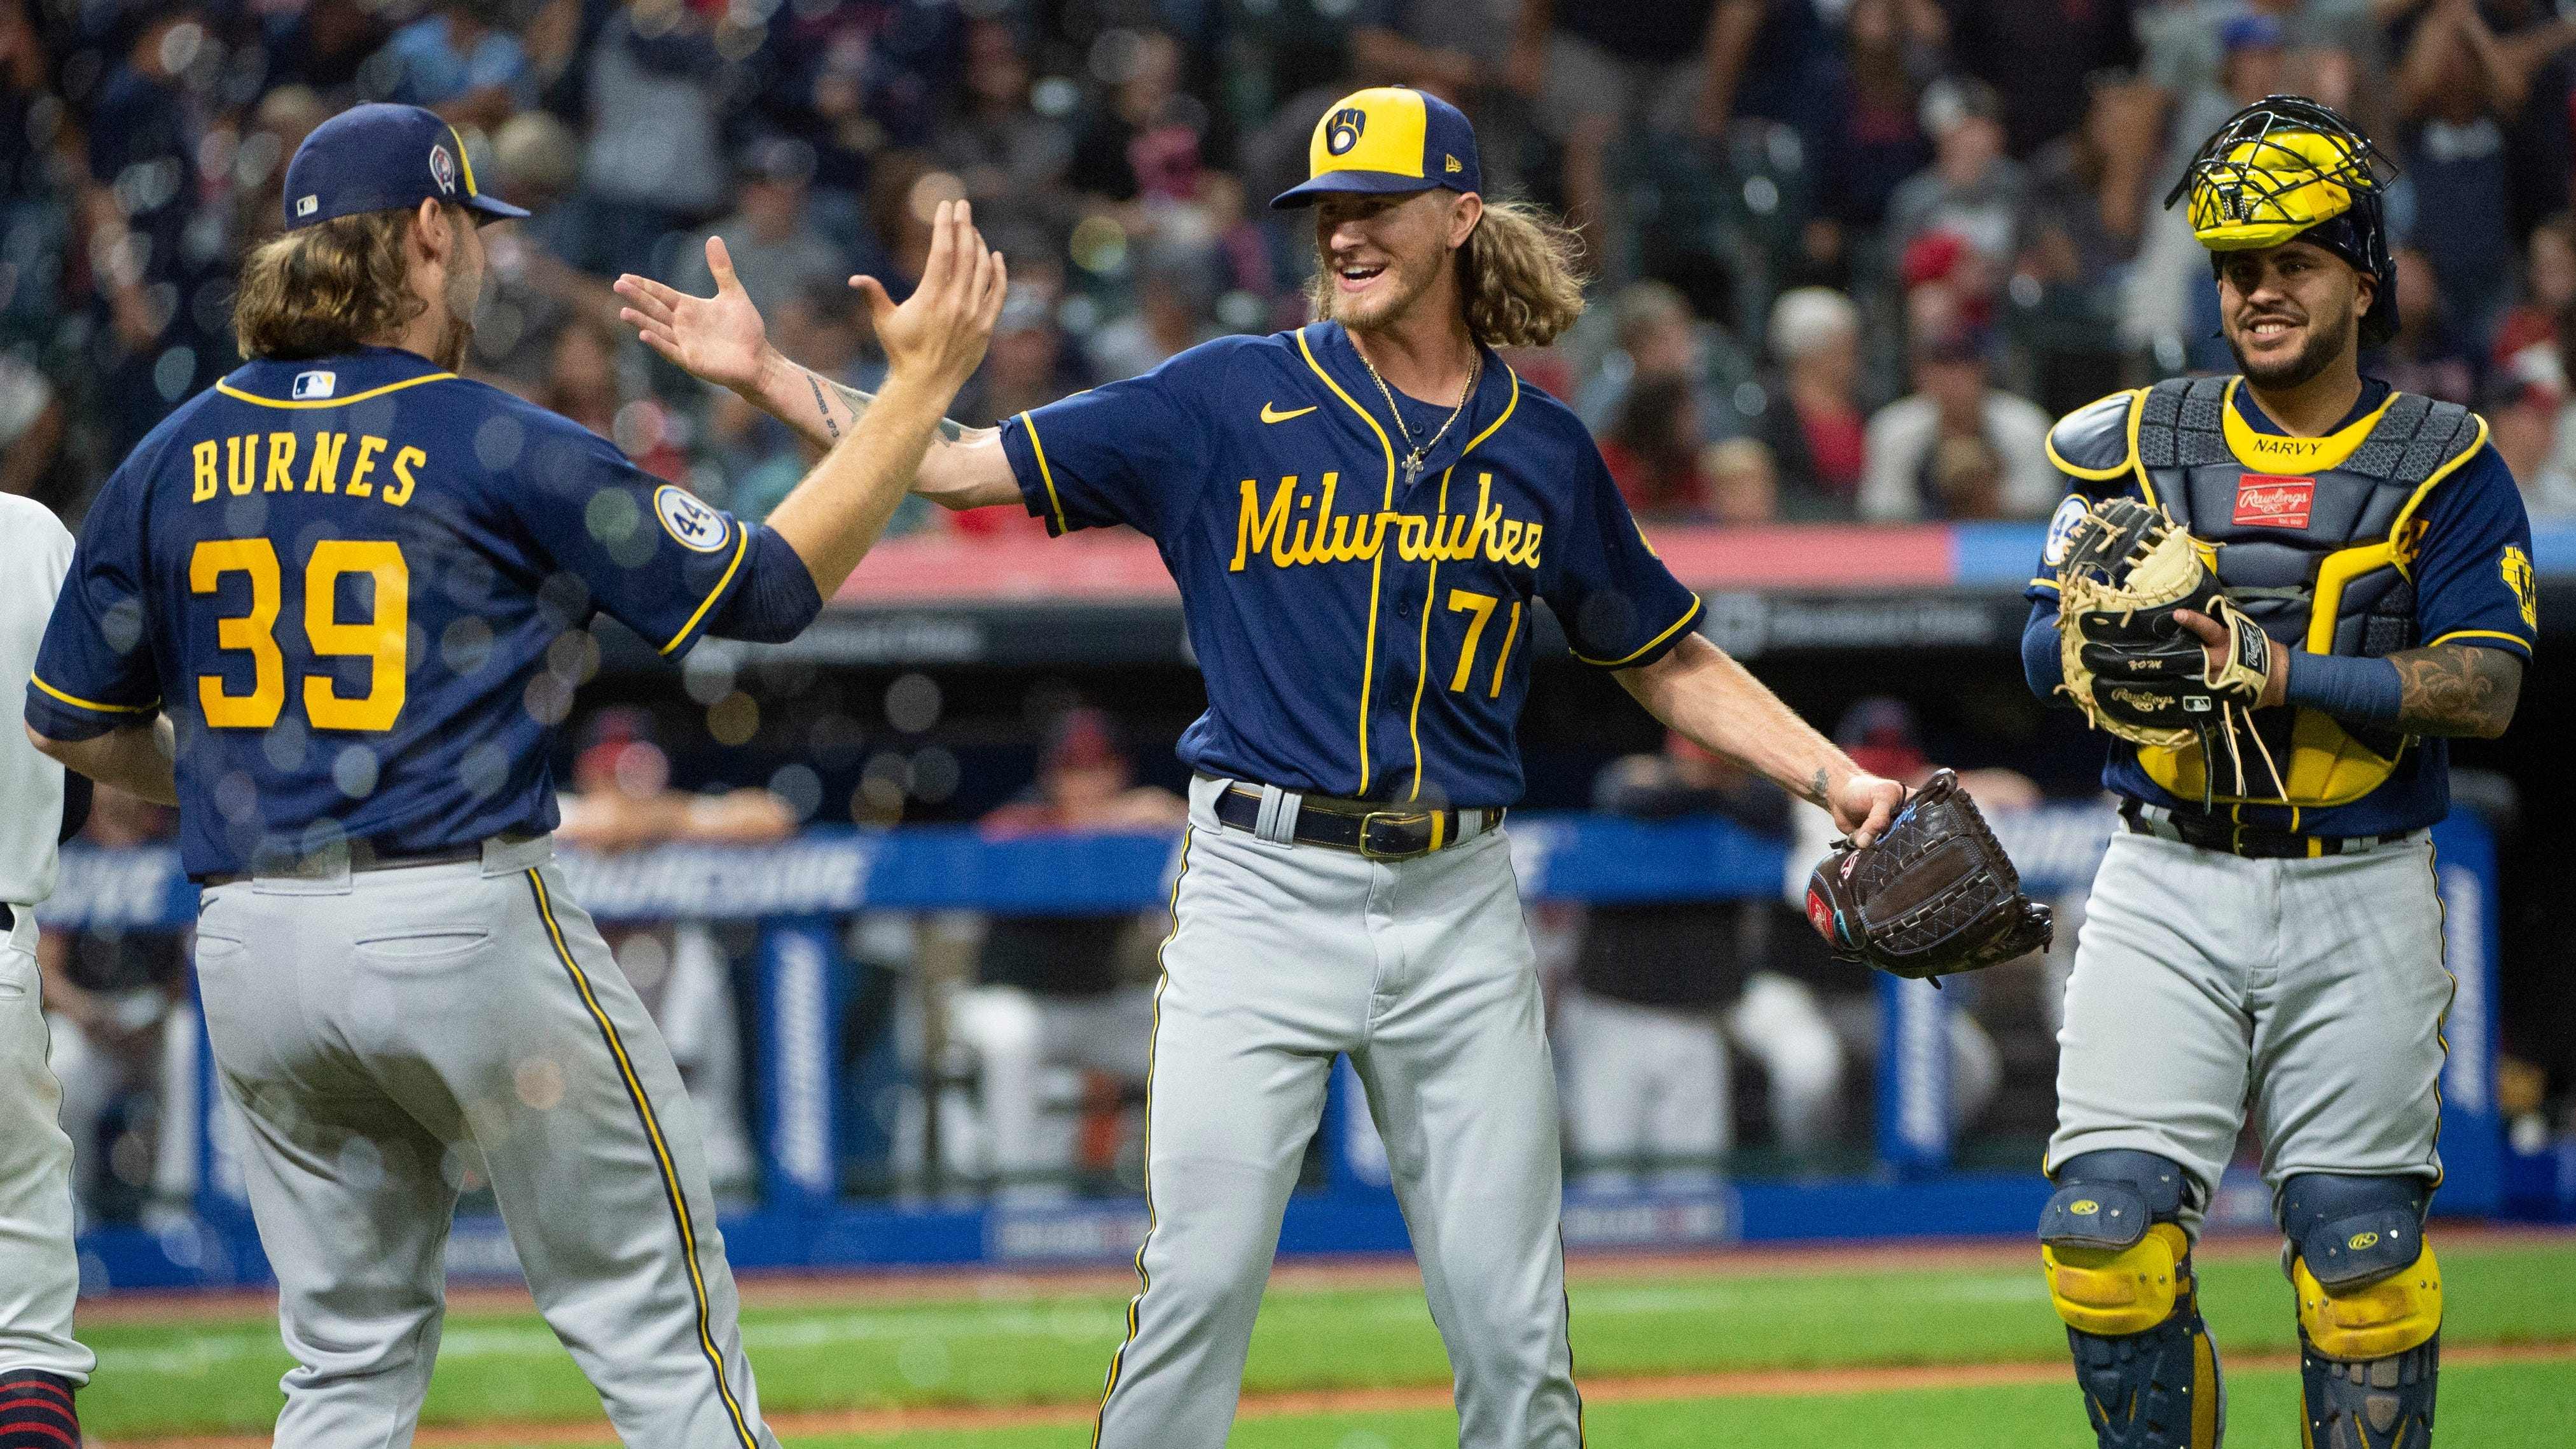 Milwaukee Brewers closer Josh Hader and starting pitcher Corbin Burnes celebrate their combined no-hitter against Cleveland as catcher Omar Narváez is all smiles after the team's 3-0 victory on Saturday, Sept. 11, 2021, at Progressive Field. It was the team's first no-hitter since 1987.